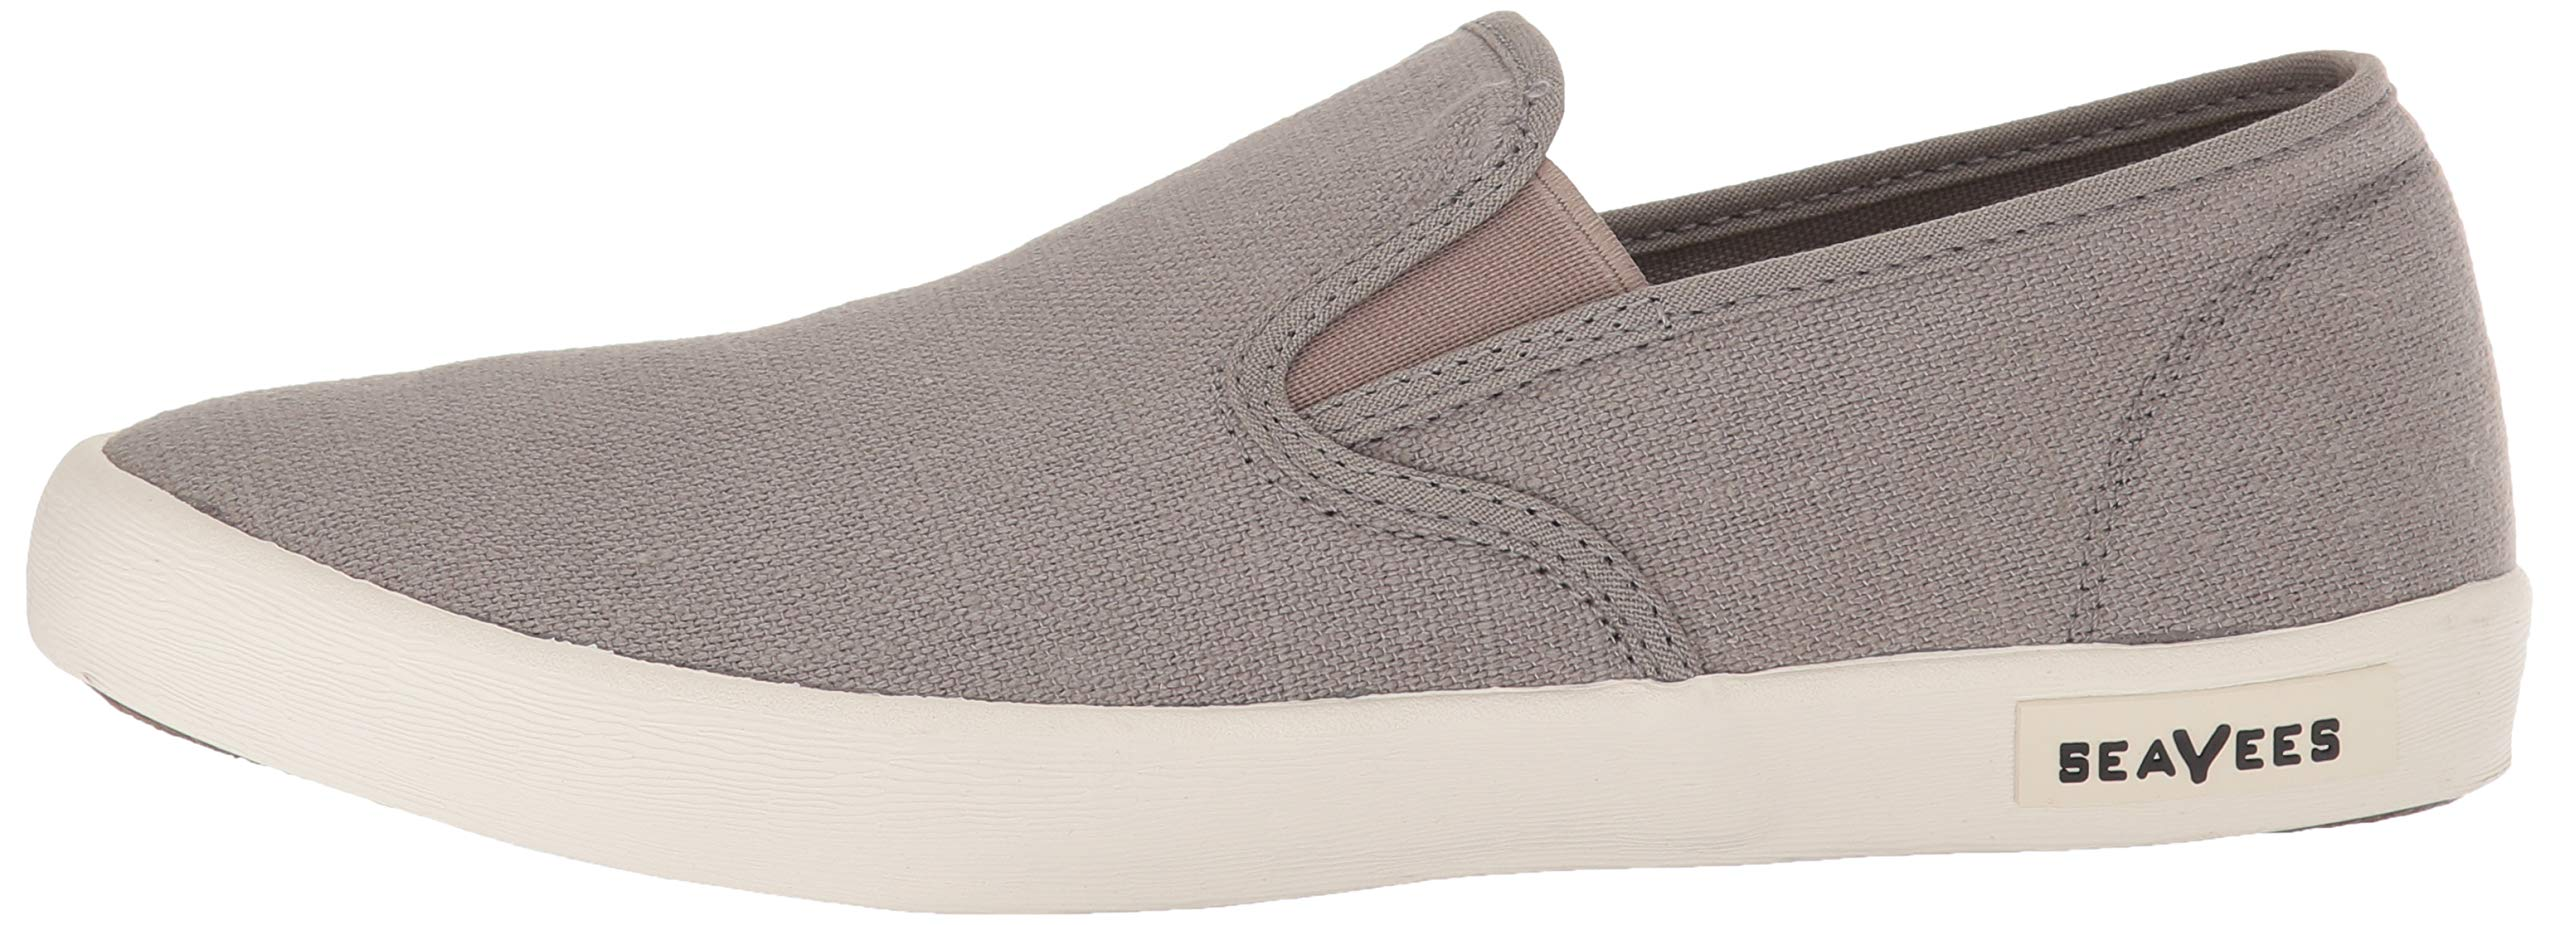 SeaVees Men's Baja Slip On Standard Casual Sneaker,Tin Grey, 12 by SeaVees (Image #5)